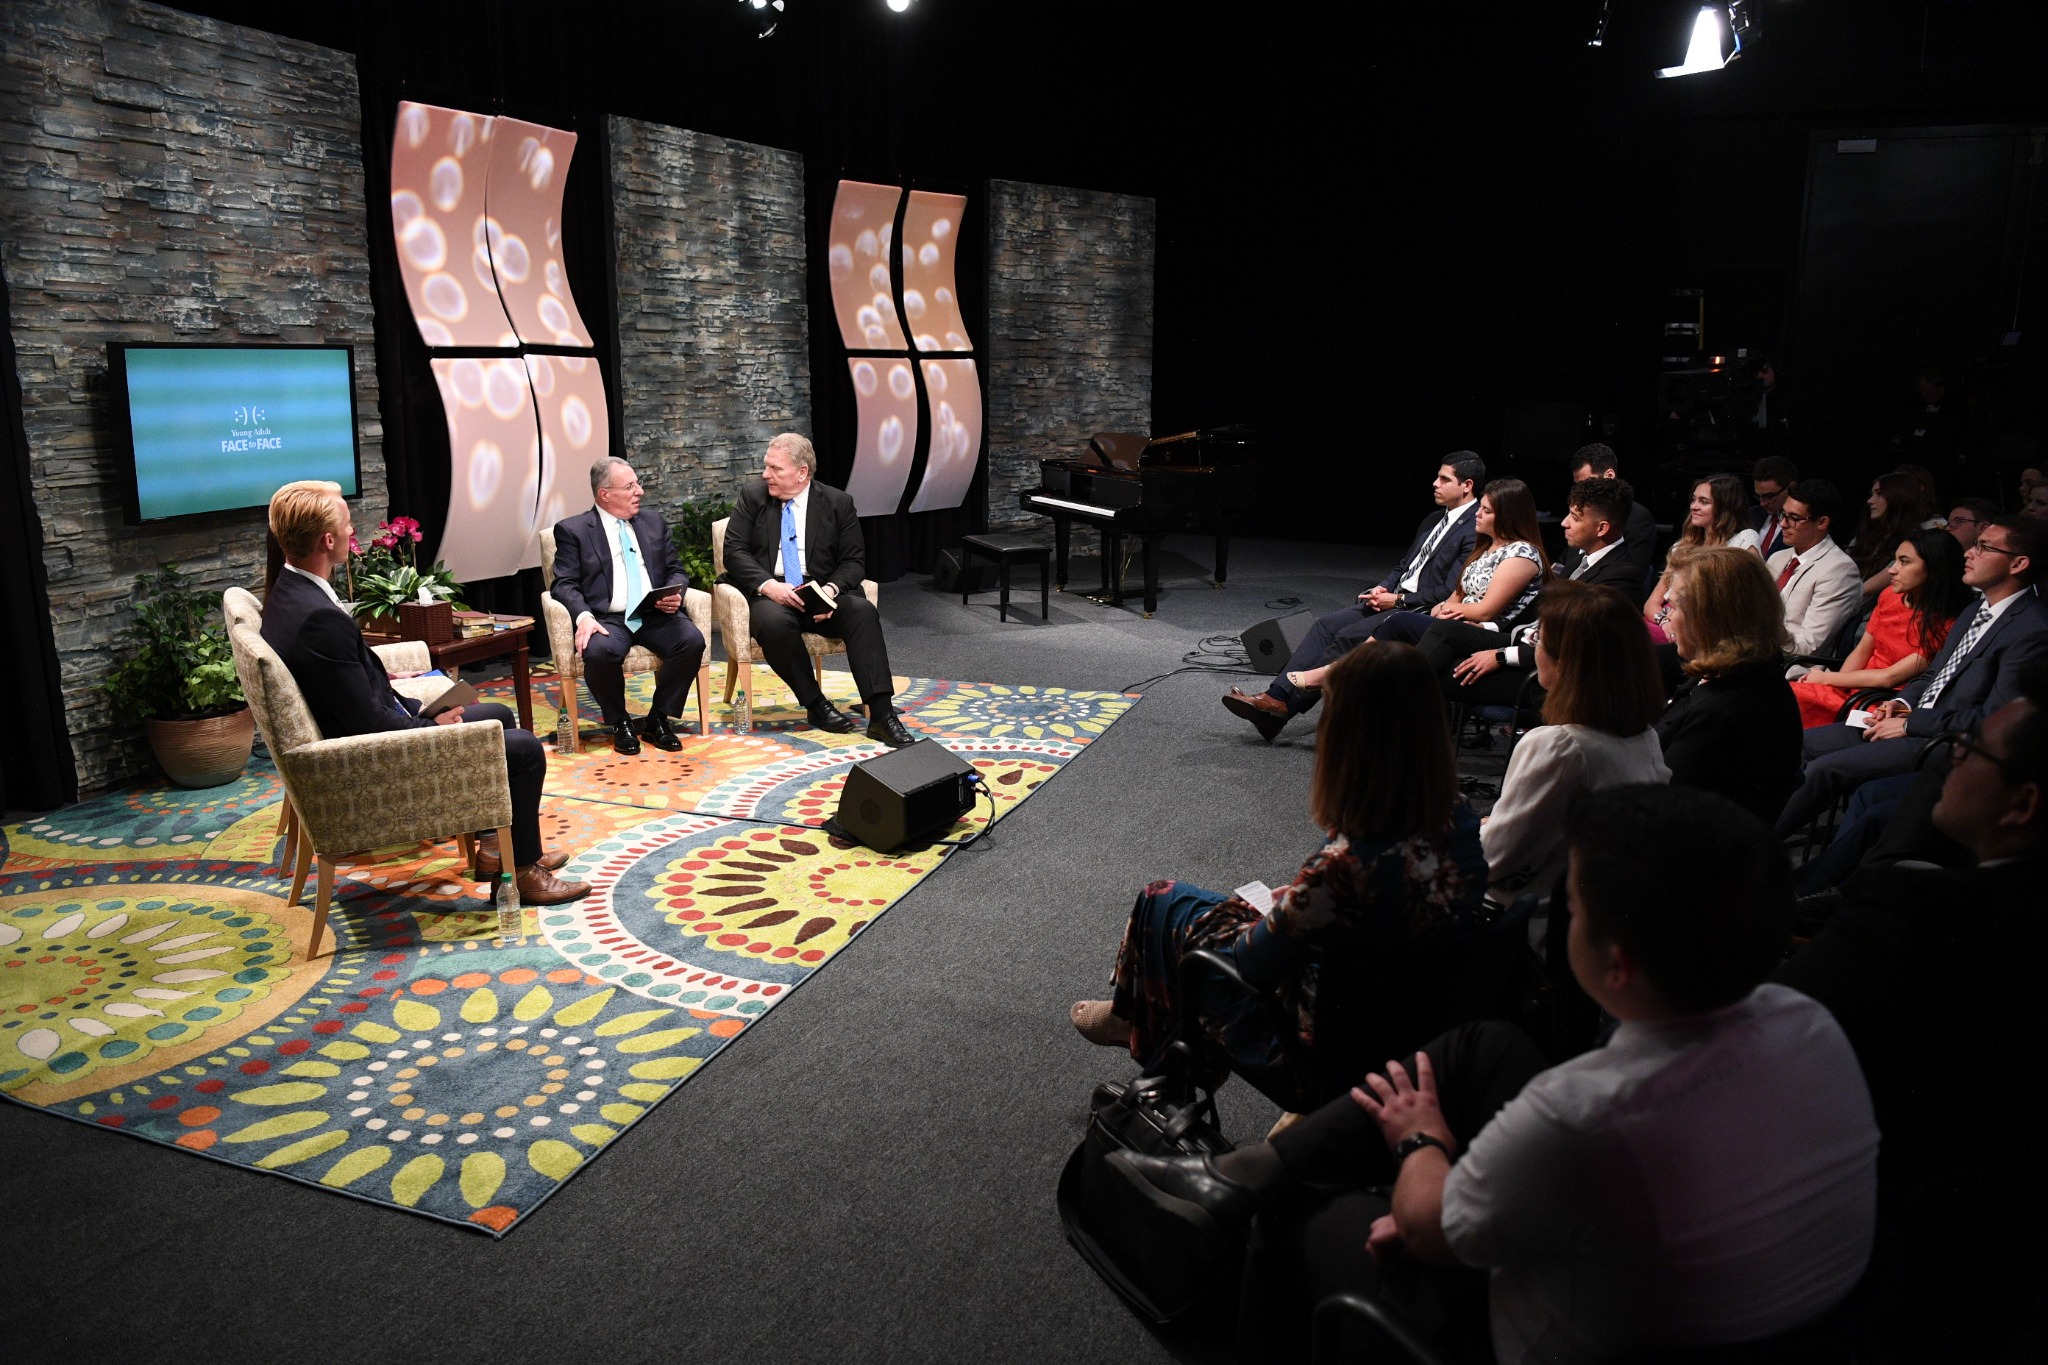 A Brigham Young University studio is the location of a Worldwide Devotional Face to Face broadcast with young adults on Sunday, September 15, 2019. Elder Ulisses Soares of the Quorum of the Twelve Apostles and Elder Craig C. Christensen of the Seventy participate in live 90-minute program.